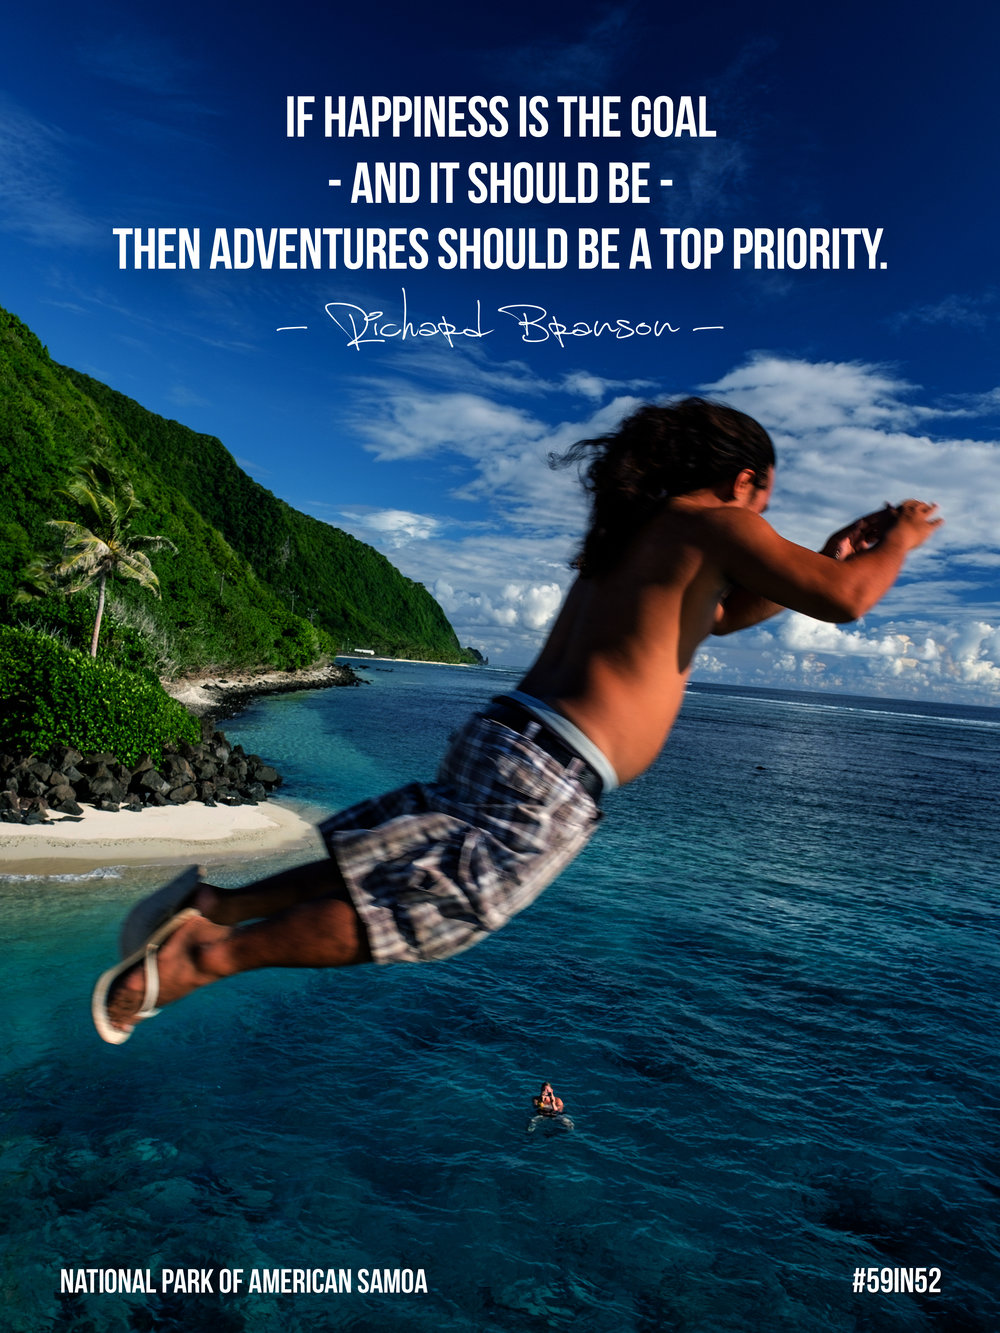 'If happiness is your goal - and it should be - then adventures should be a top priority.' - Richard Branson